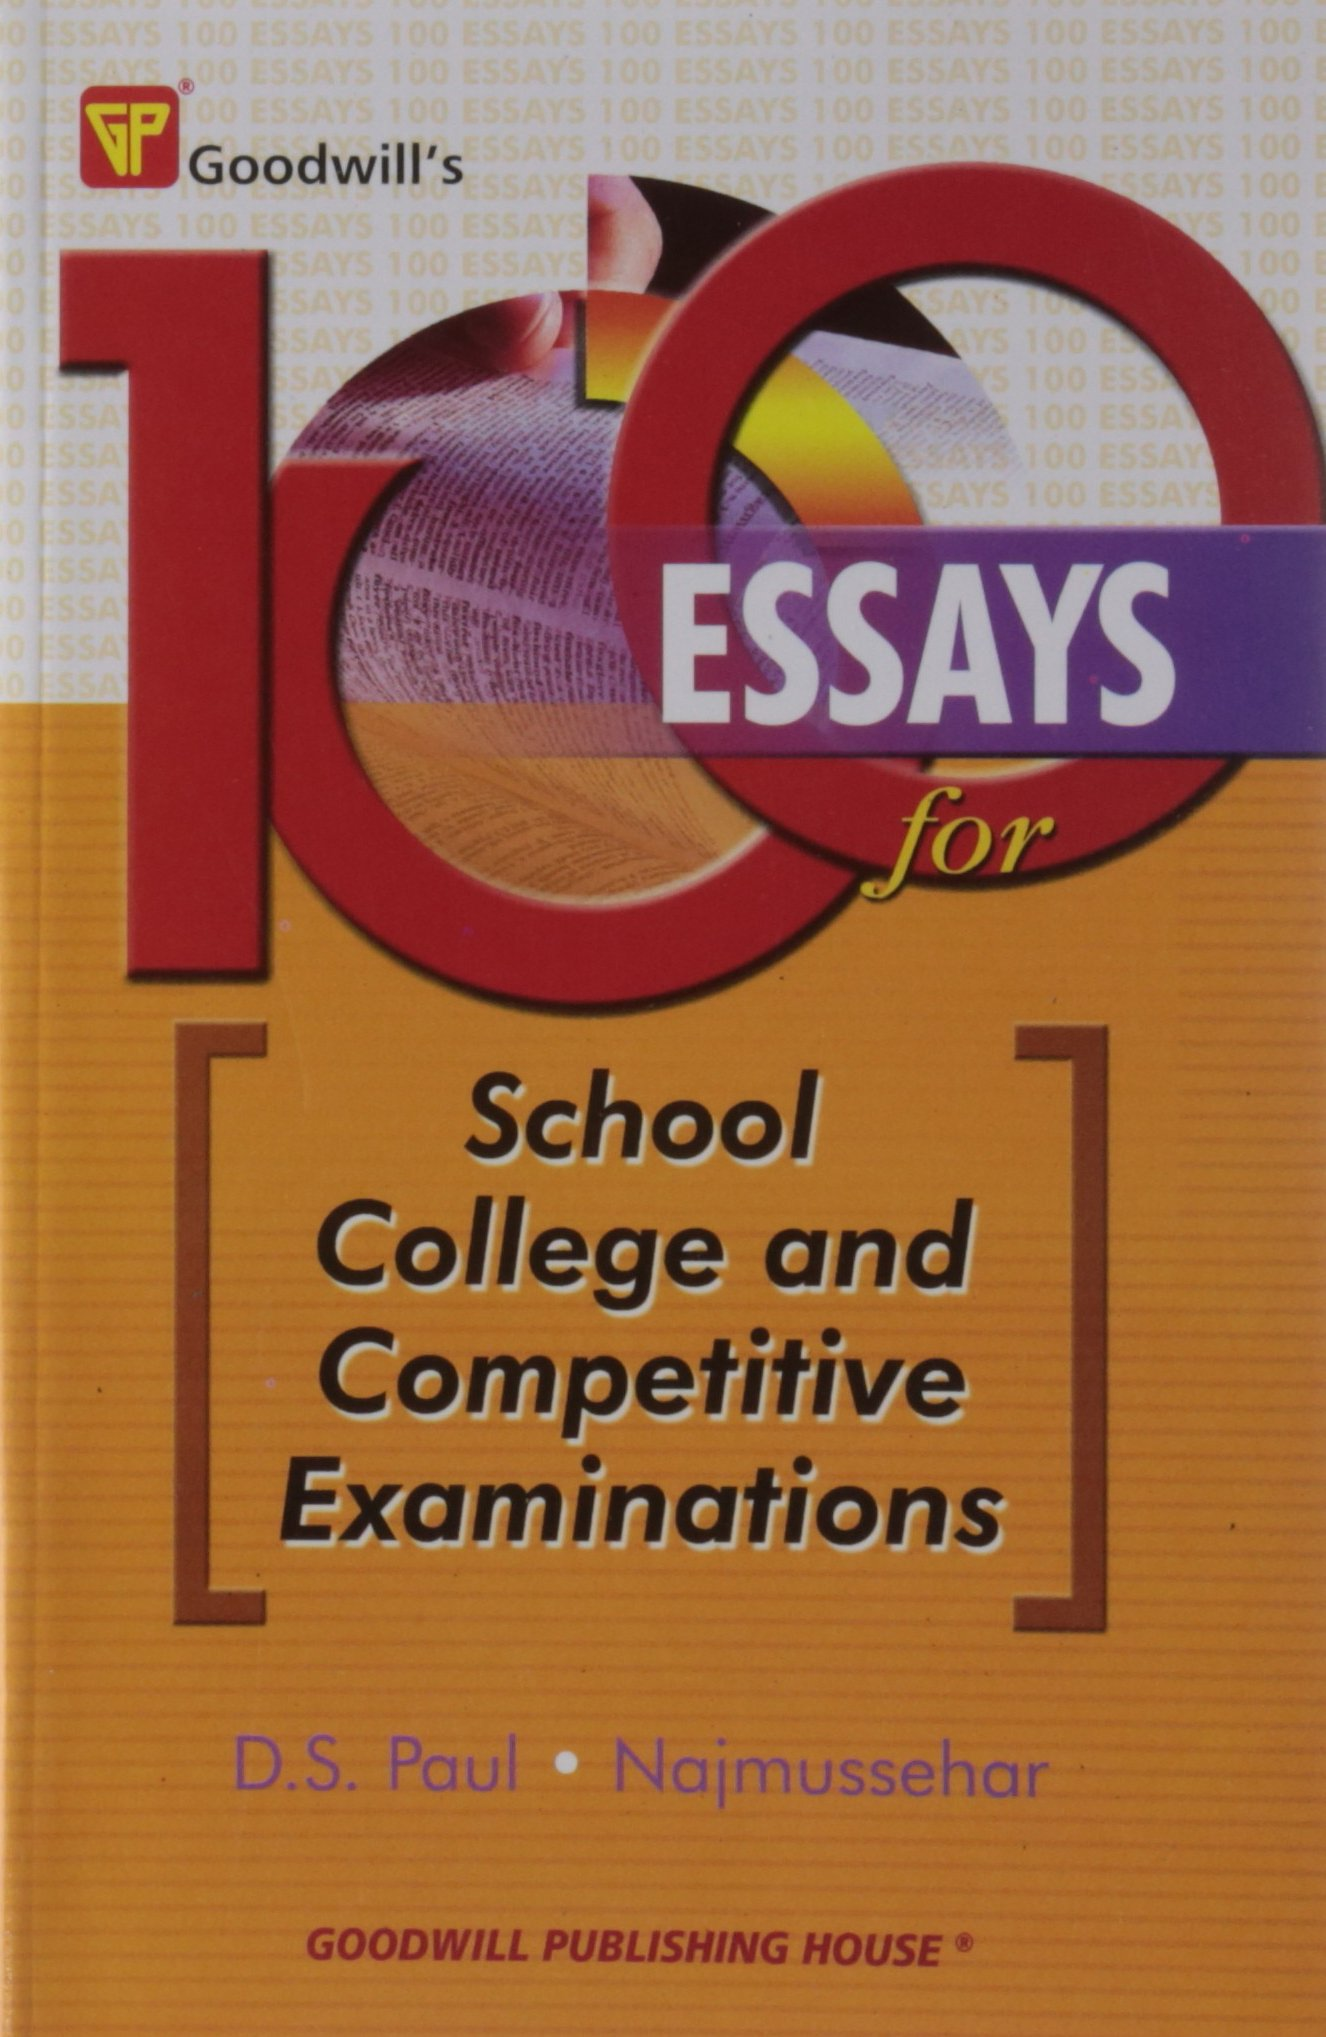 buy 100 essays for school college and competitive examinations buy 100 essays for school college and competitive examinations book online at low prices in 100 essays for school college and competitive